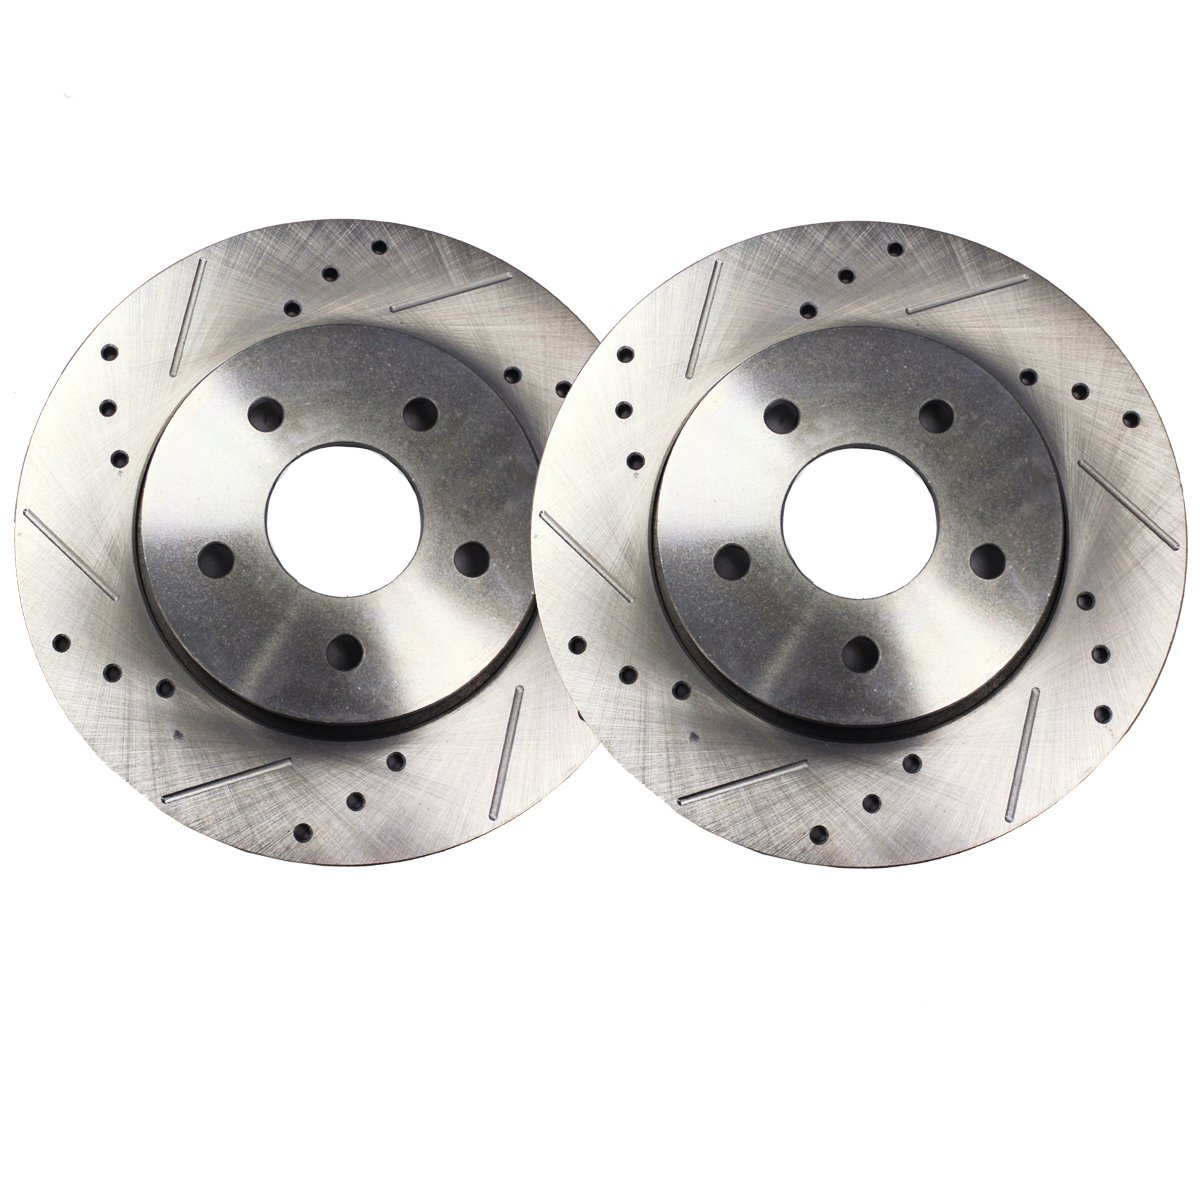 Detroit Axle - 11.92' (303mm) 5 Lug FRONT Drilled and Slotted Brake Rotors for GM Models - Check Fitment Chart